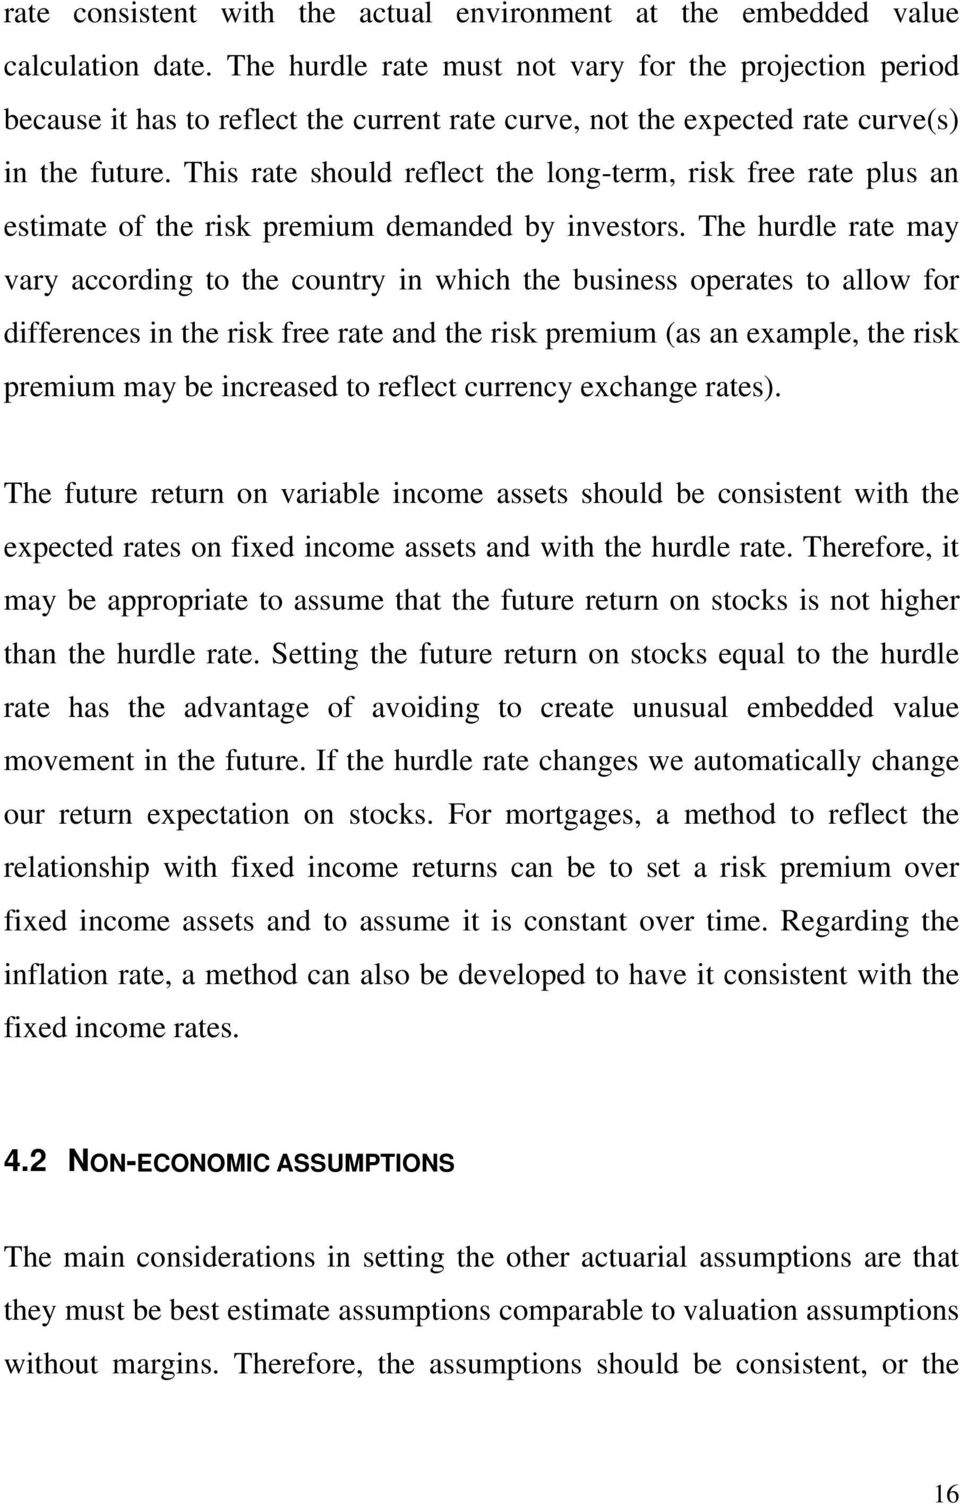 This rae should reflec he long-erm, risk free rae plus an esimae of he risk premium demanded by inesors.